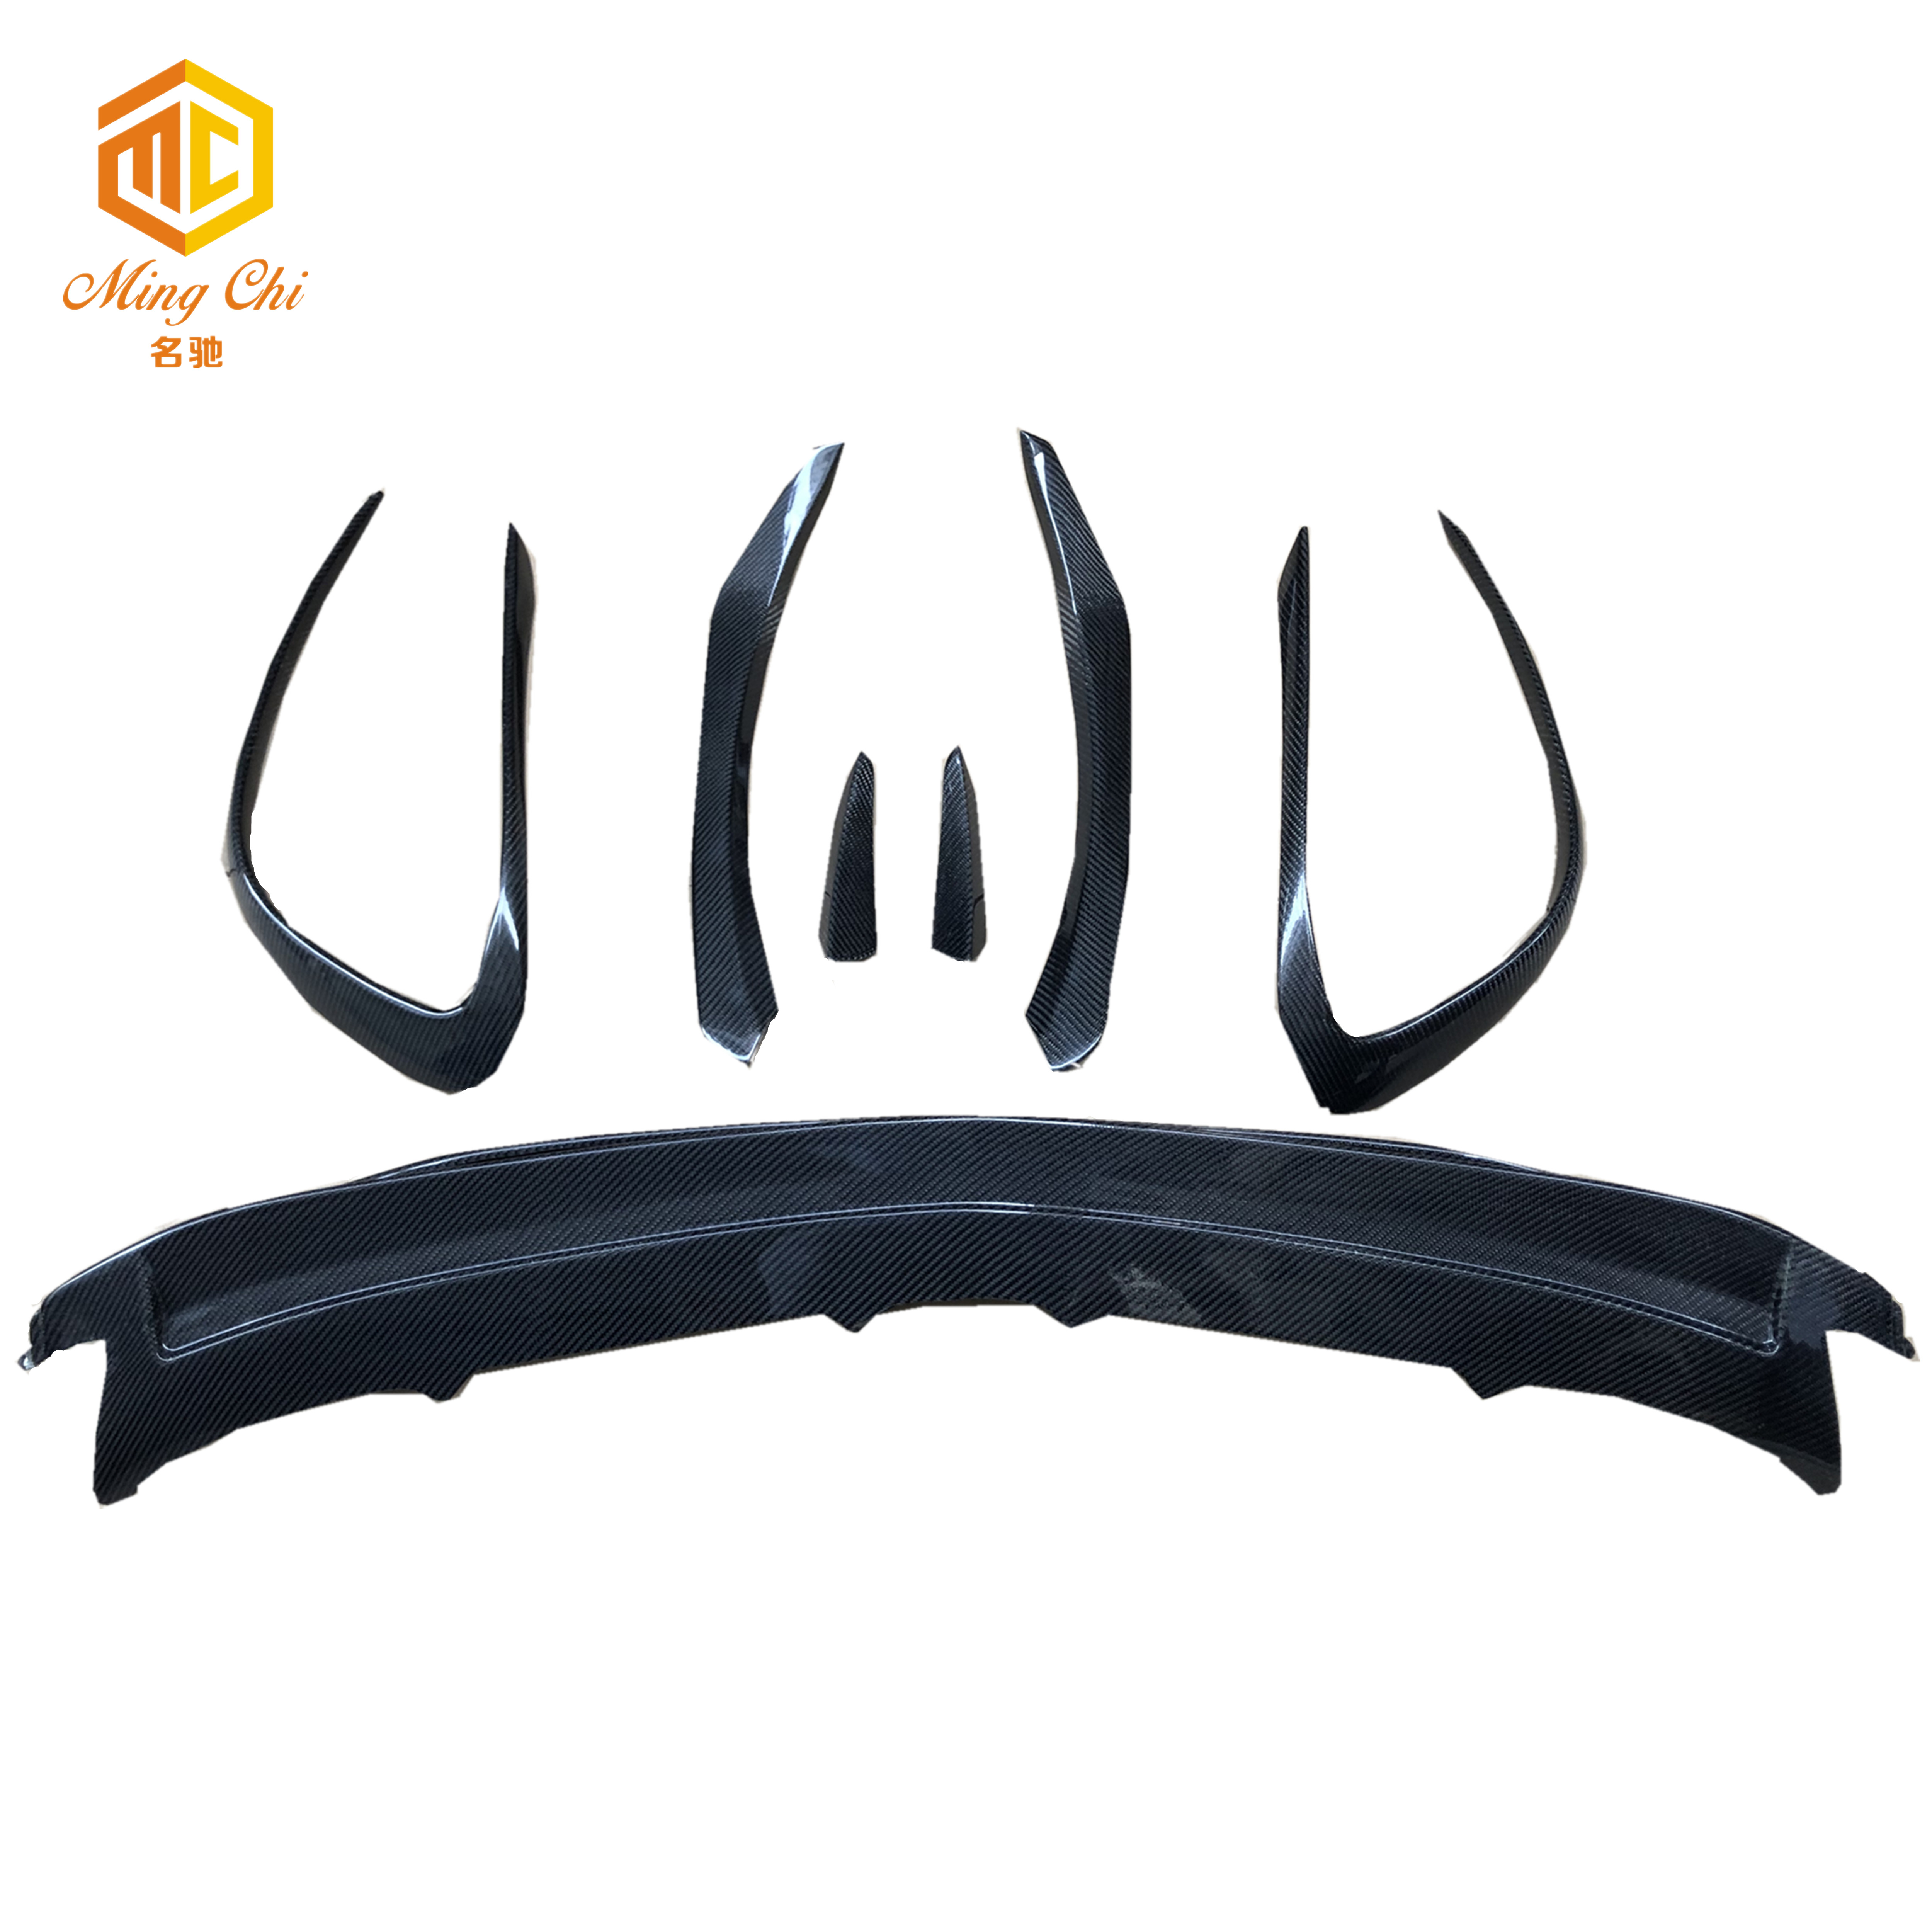 OEM AMG style front bumper carbon lip for Mercedes Benz cla45 cal200 cal250 <strong>w117</strong> front separator trim heat sink